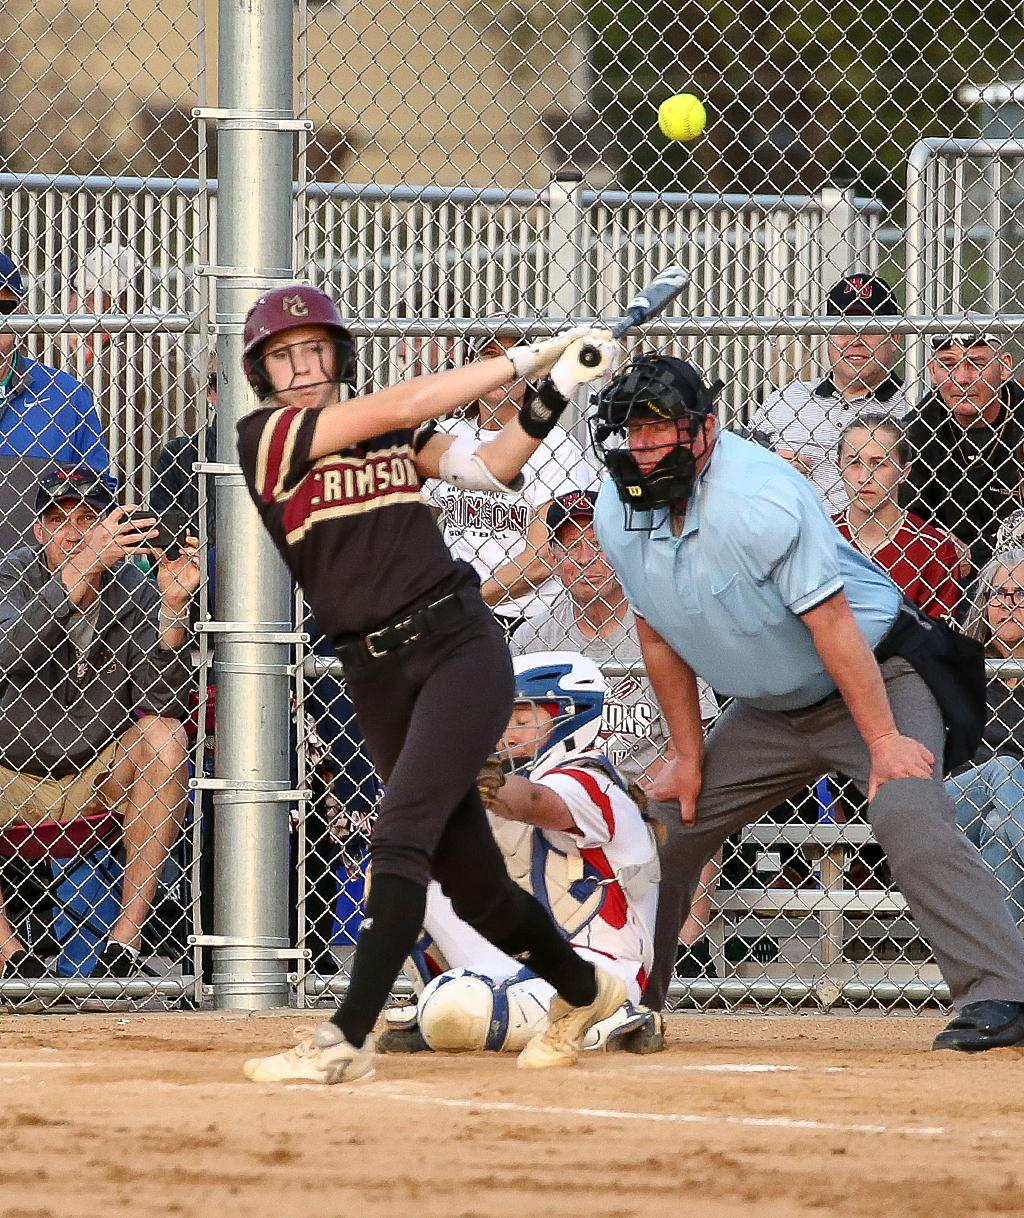 Ava Dueck sends the ball over the left field fence in the bottom of the first inning. Dueck added a two-run homer in the third to give Maple Grove a 3-0 win over Centennial on Tuesday night. Photo by Cheryl Myers, SportsEngine